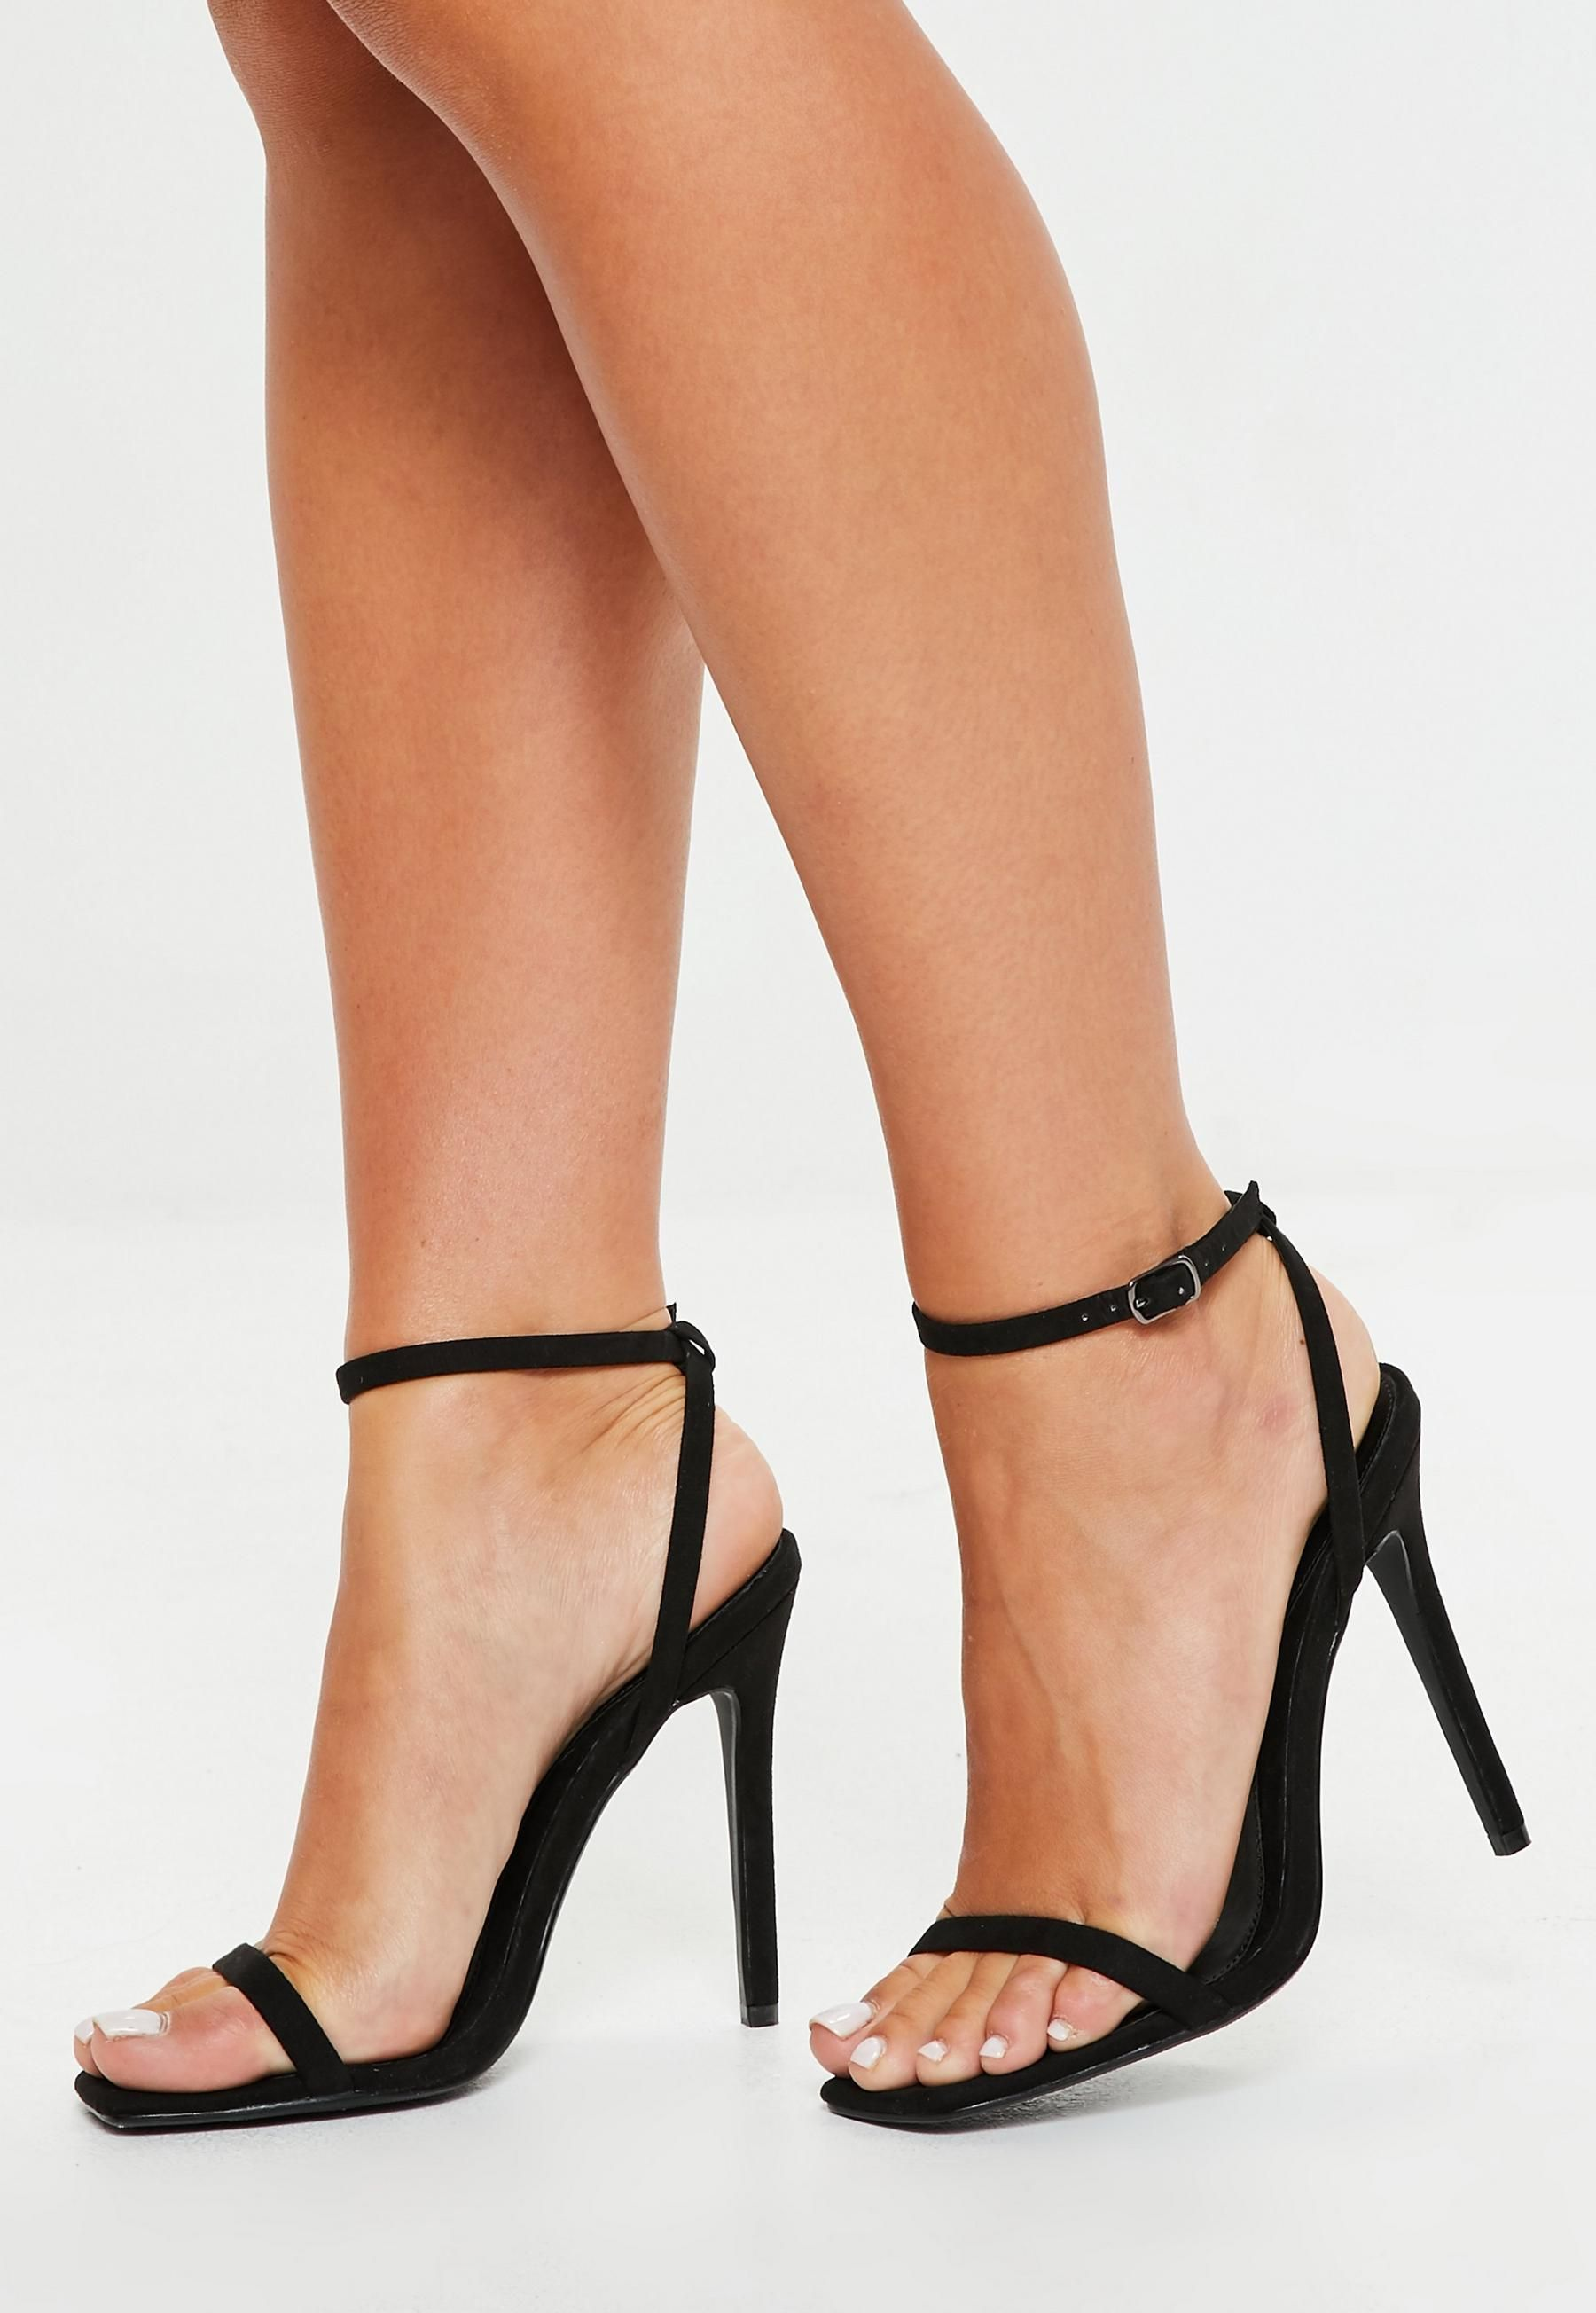 8eb17a88f1fc Missguided Black Barely There Heels in 2019